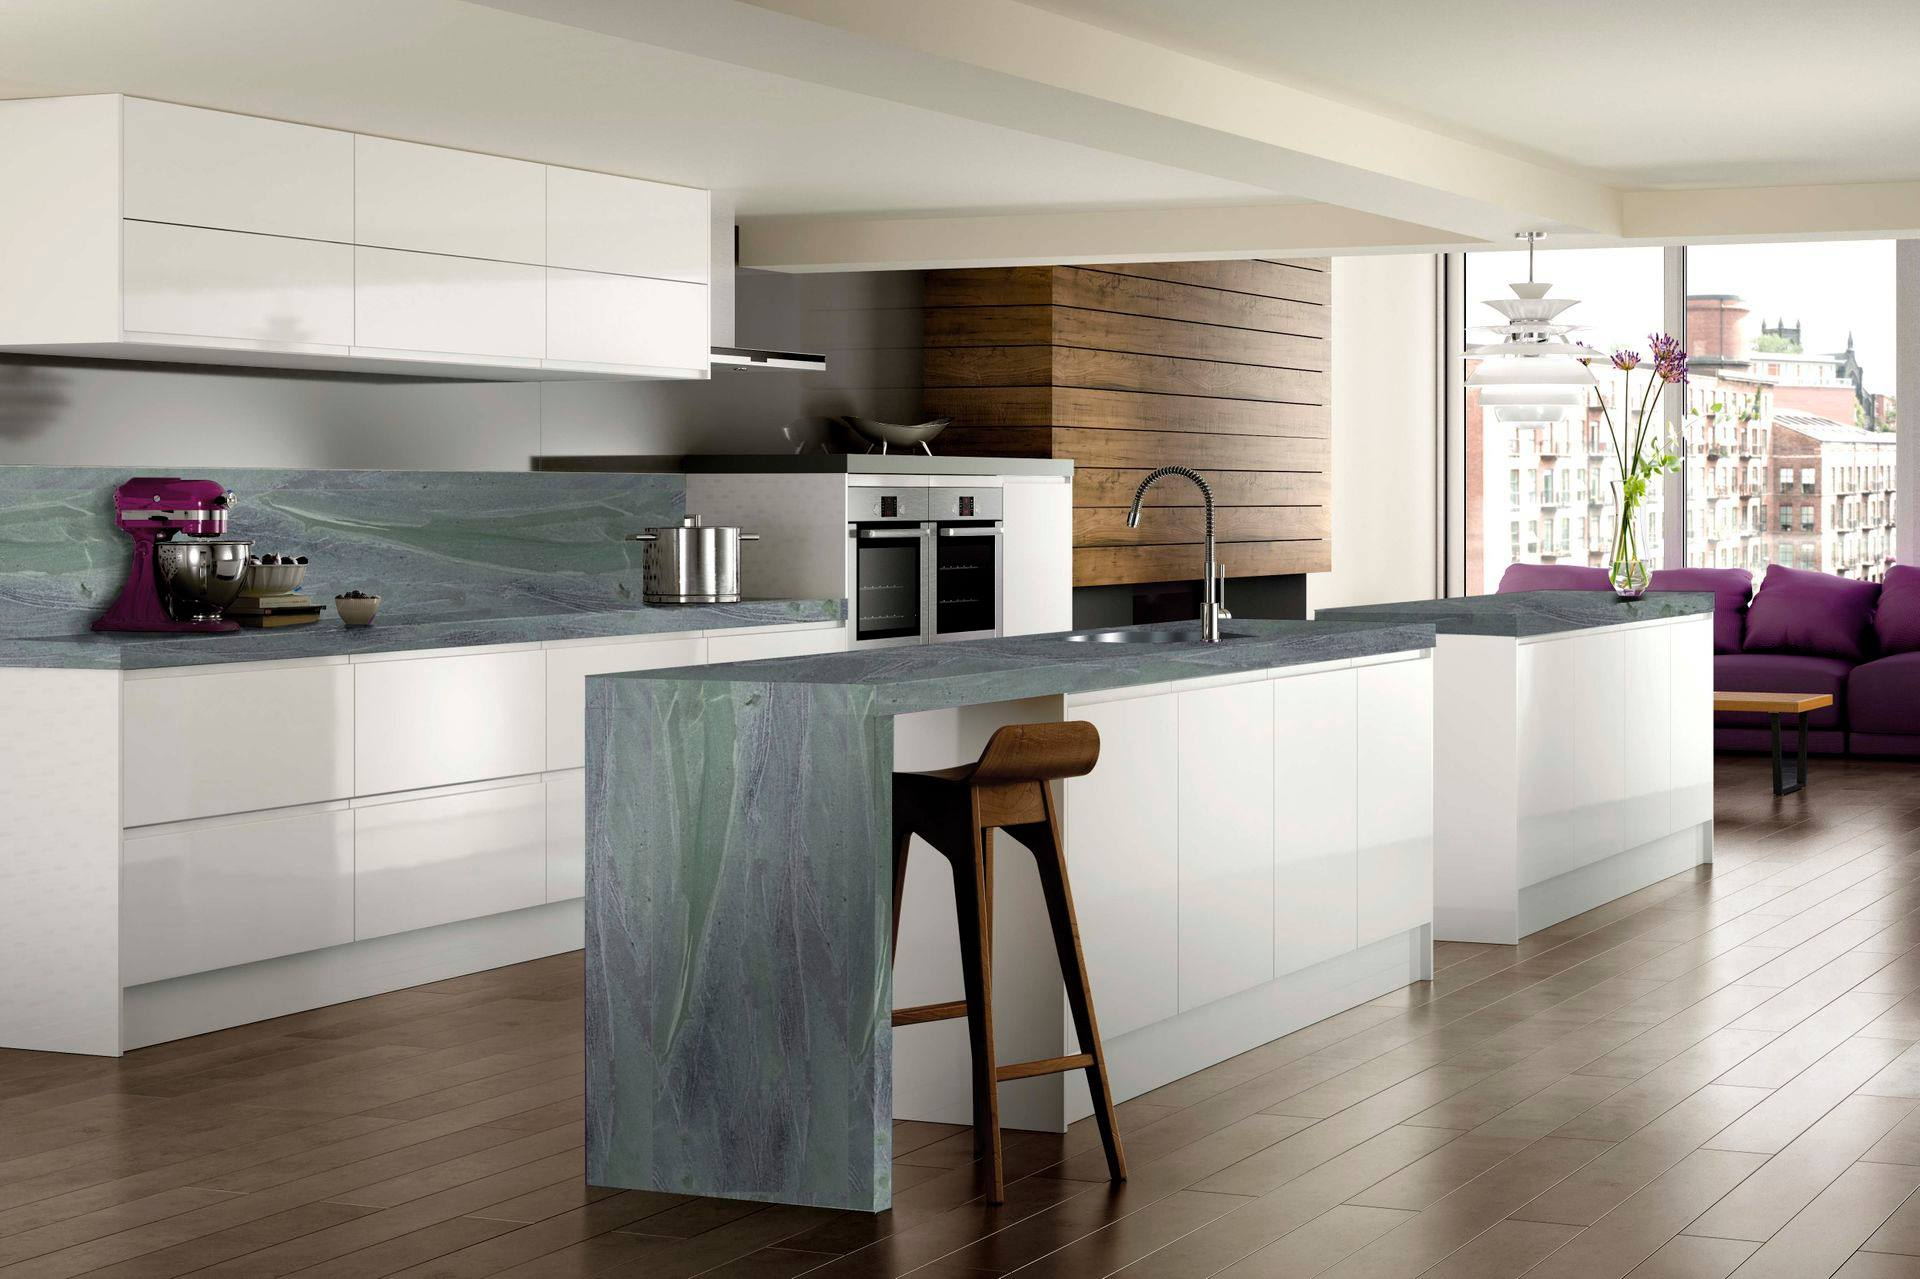 Mkw Surfaces Stocks The Widest Range Of High Gloss Black Kitchen Worktops